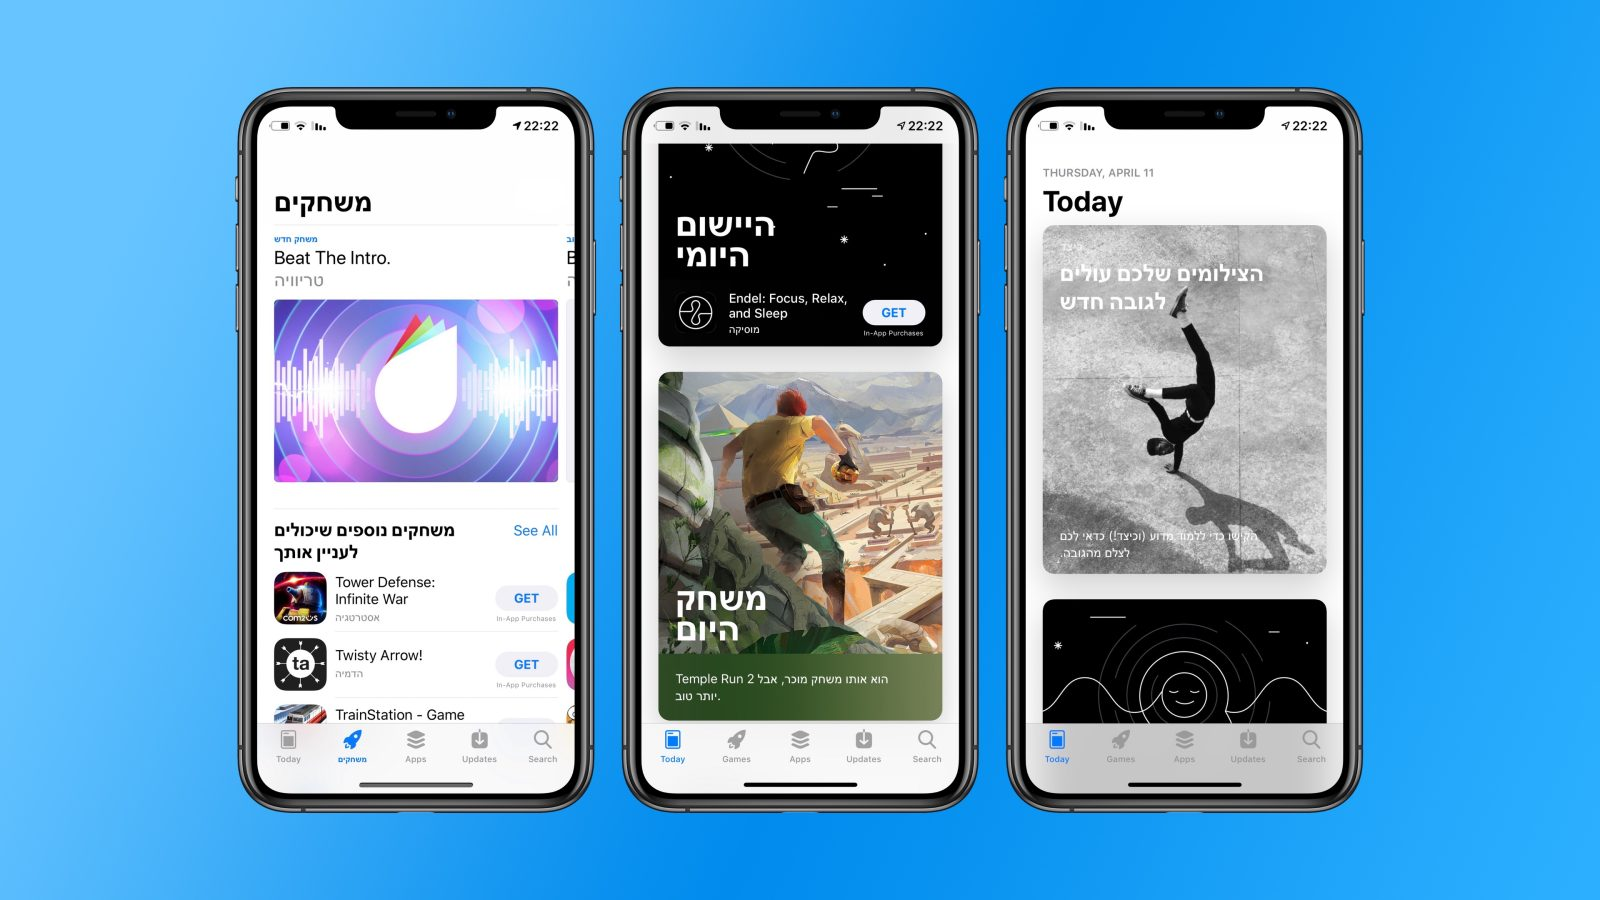 Apple begins localizing App Store content to Hebrew for users in Israel